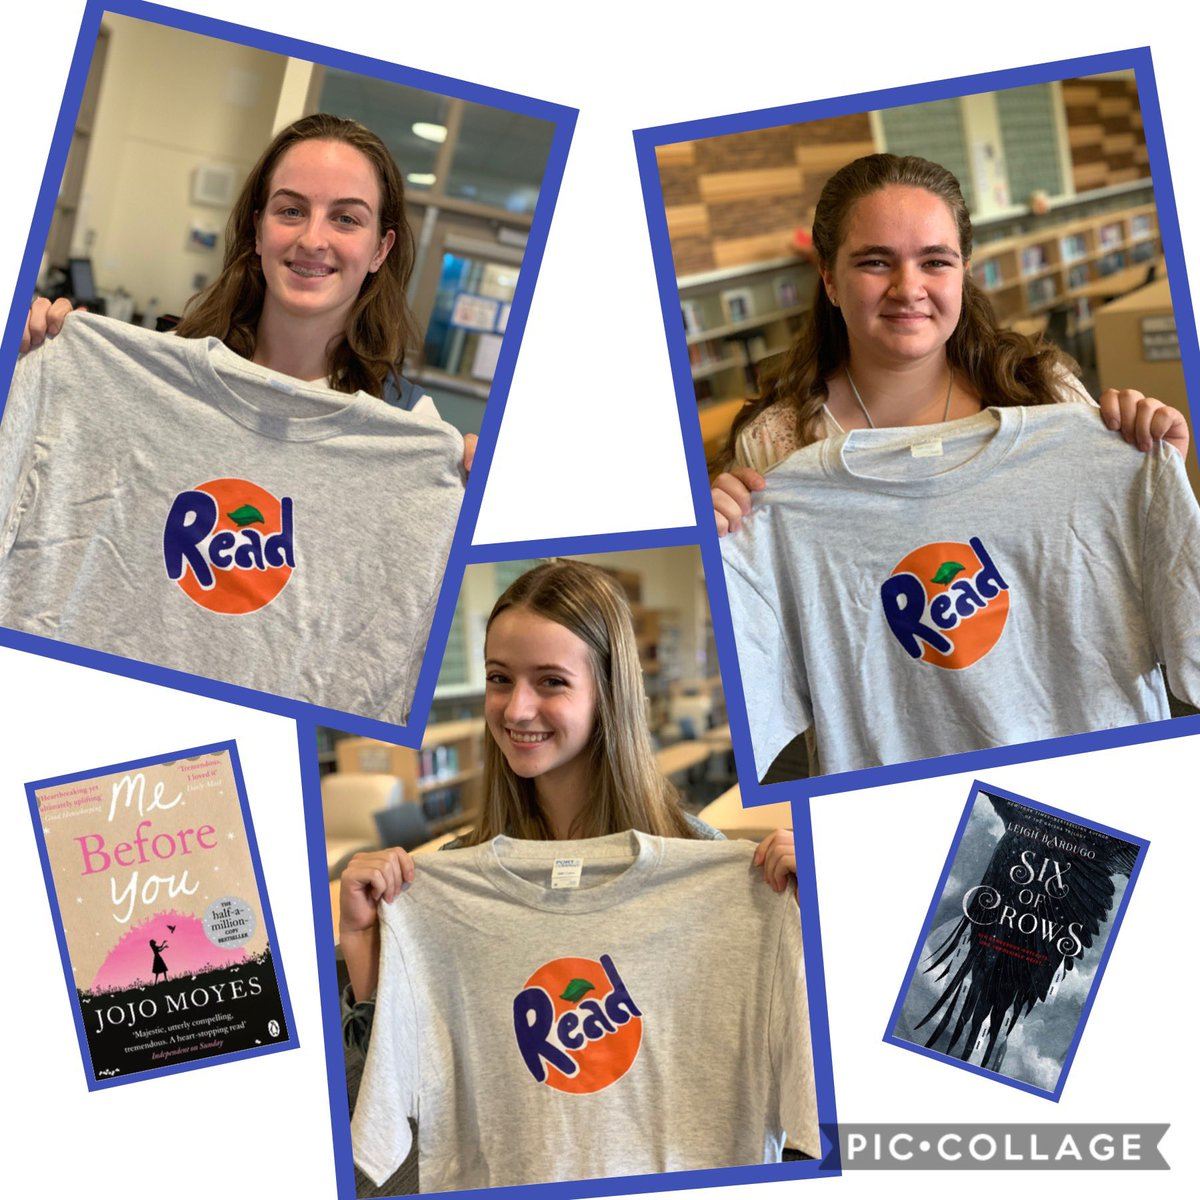 Some of our favorite readers - Sadie, Emma, and Lizzie - and some of their favorite books from their #summerreading.  #Jesuitreads #readingtshirts #highschoollibrary #librariesofinstagram @lizziedronkers  @jojomoyes @LBardugo @JesuitHighPDX https://t.co/70FkZlqSGE